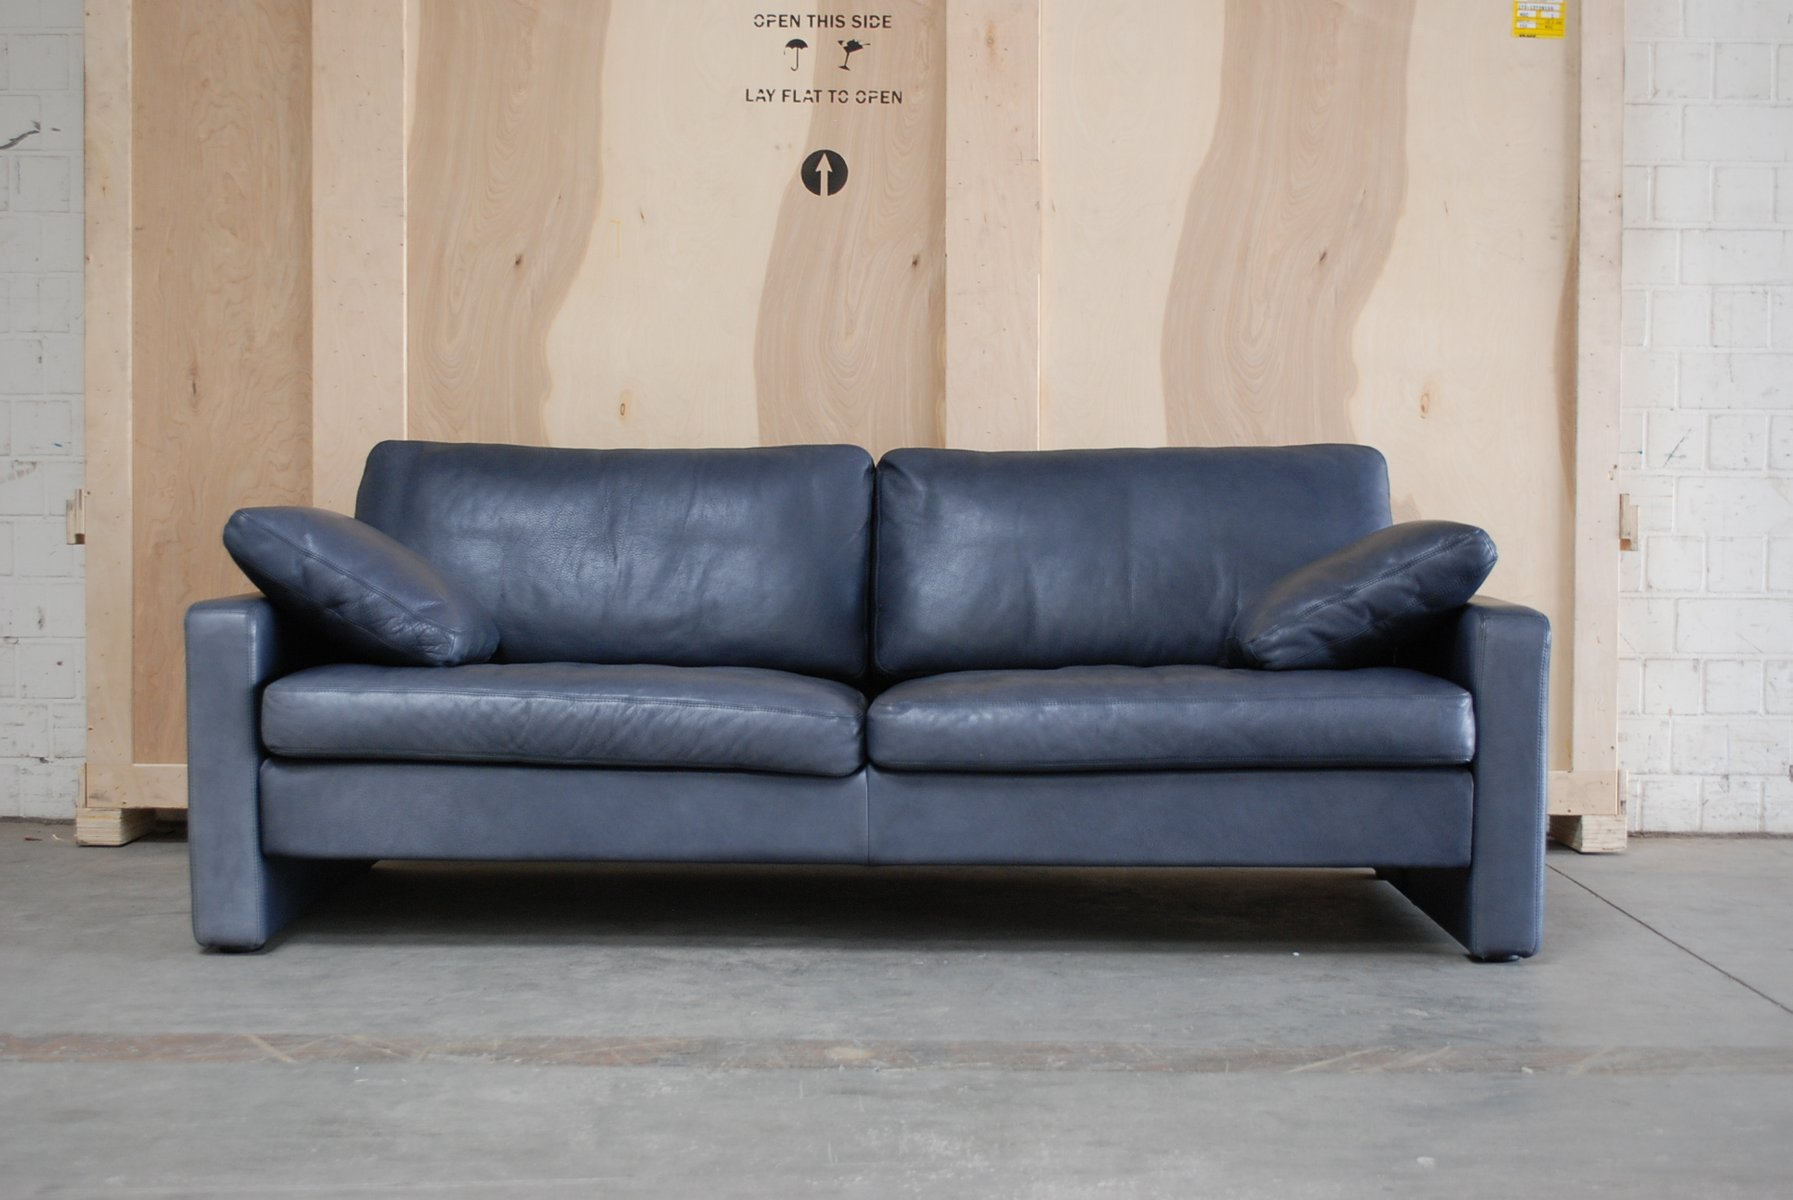 Charmant Vintage Conseta Blue Leather Sofa From Cor